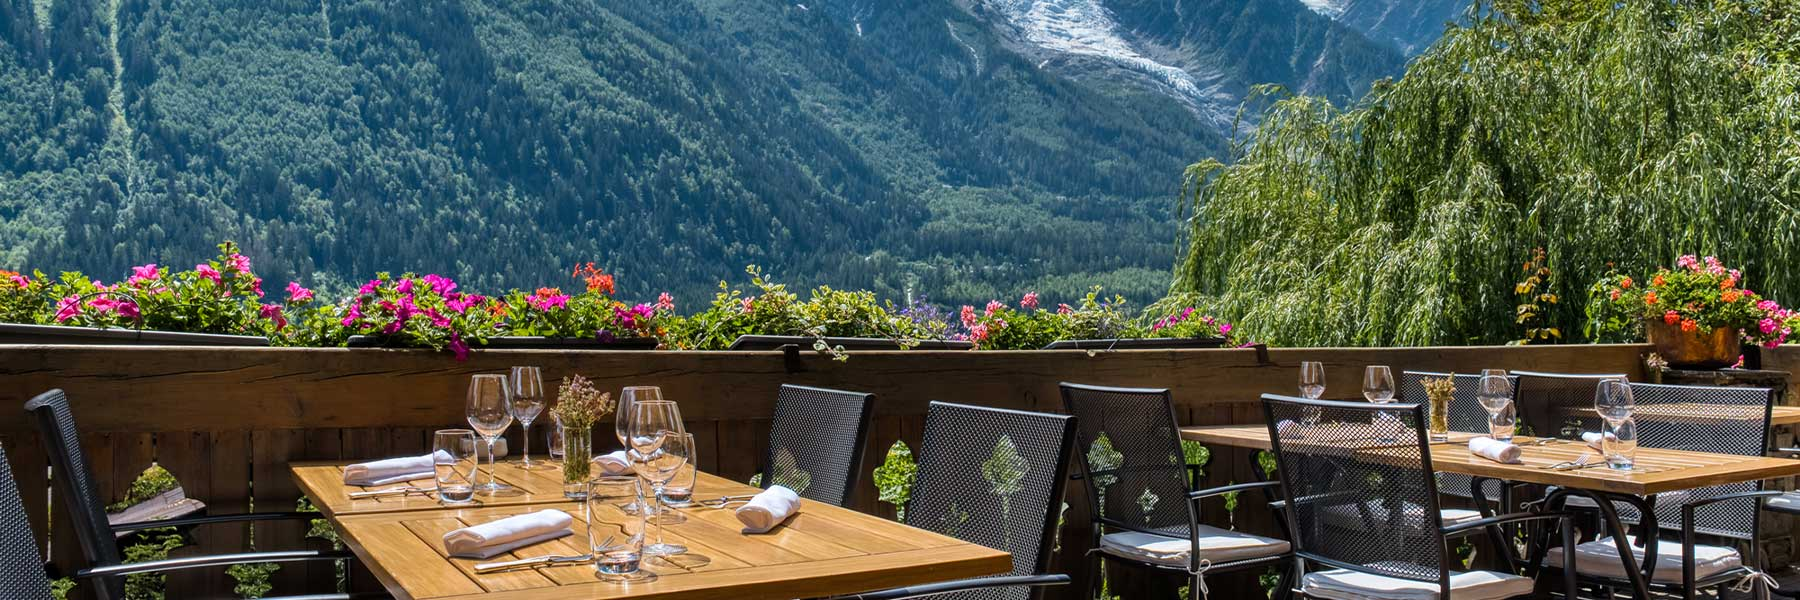 A new era at the Auberge du Bois Prin in Chamonix signed by Emmanuel and Kristine Renaut